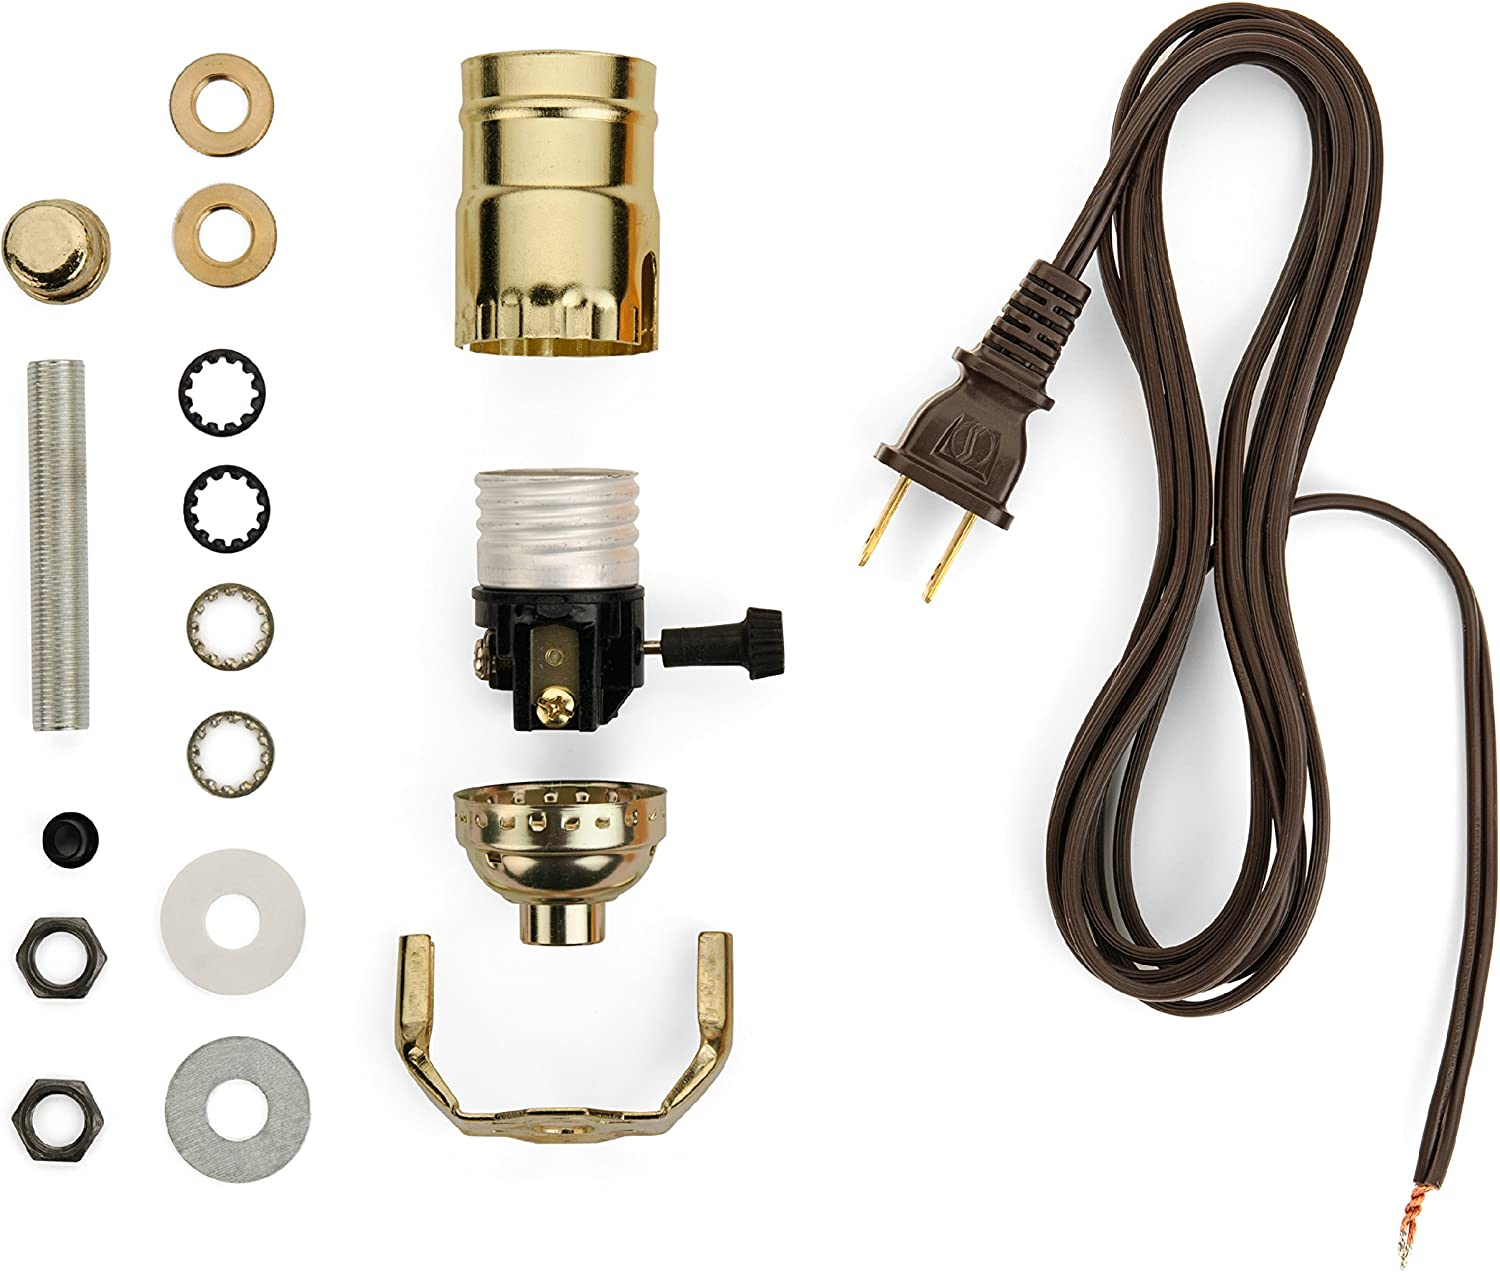 lamp-making kit - electrical wiring kit to make or refurbish lamps  (electrical lamp wiring kit with brass-plated socket and 12 feet brown wire  cord) - - amazon.com  amazon.com